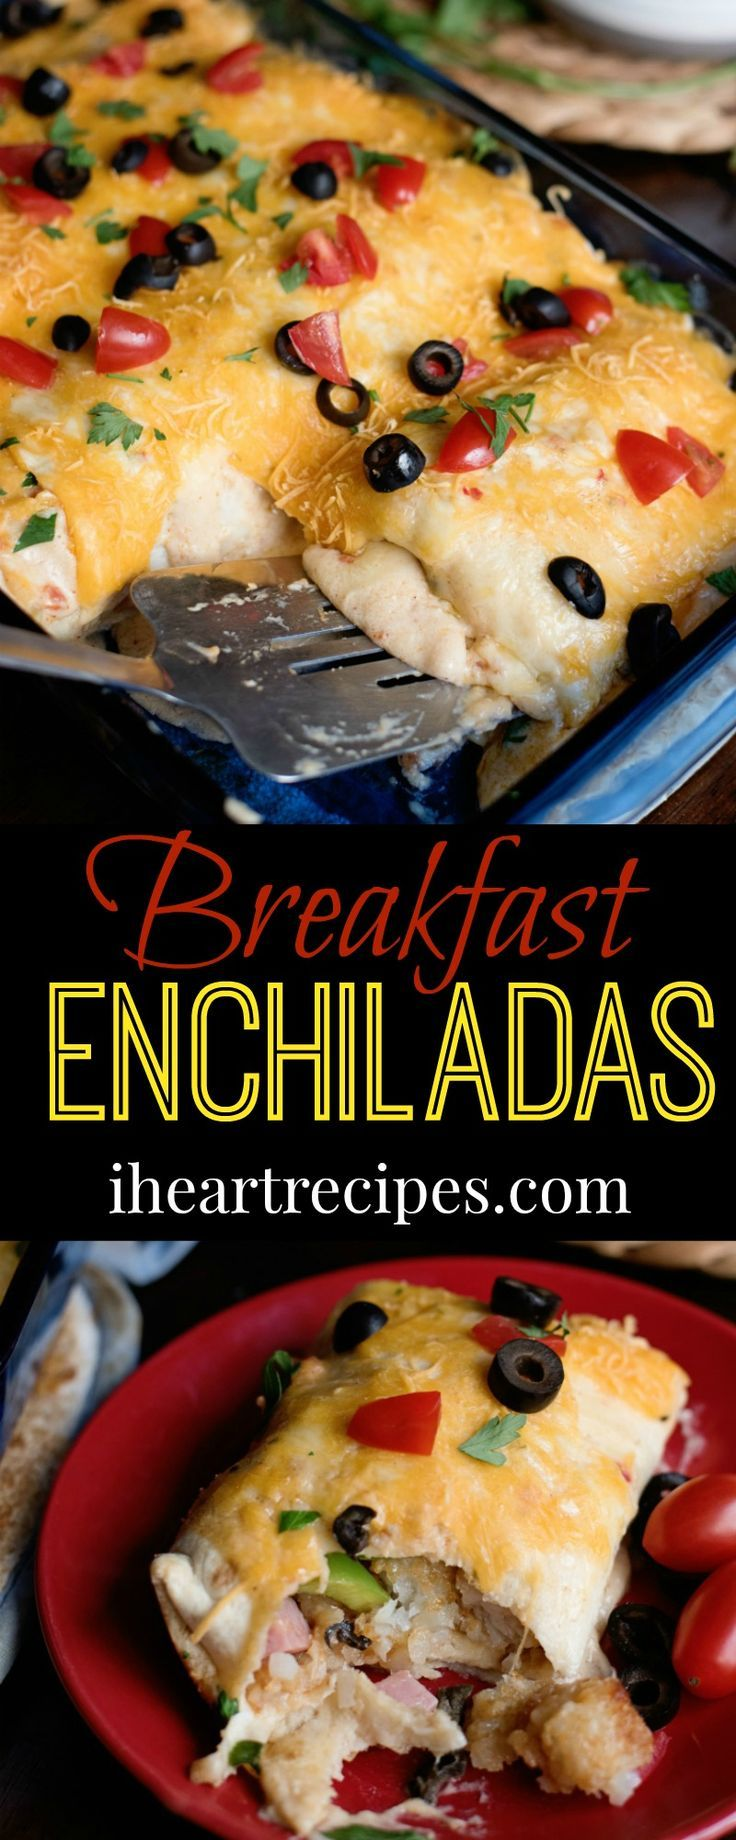 The most amazing breakfast enchiladas that my family, and I have ever eaten!! These enchiladas are freaking amazing!! So a few months ago my husband asked me to make some breakfast enchiladas. I jumped on it because, I had pinned a recipe from Pinterest that I was dying to try. The recipe was fromCarls Bad Cravings, and let me tell you, I am SO glad that I saved the recipe! This recipe is the BOMB! Like seriously my husband, son, and I couldn't stop going back for more. Needless to say s...